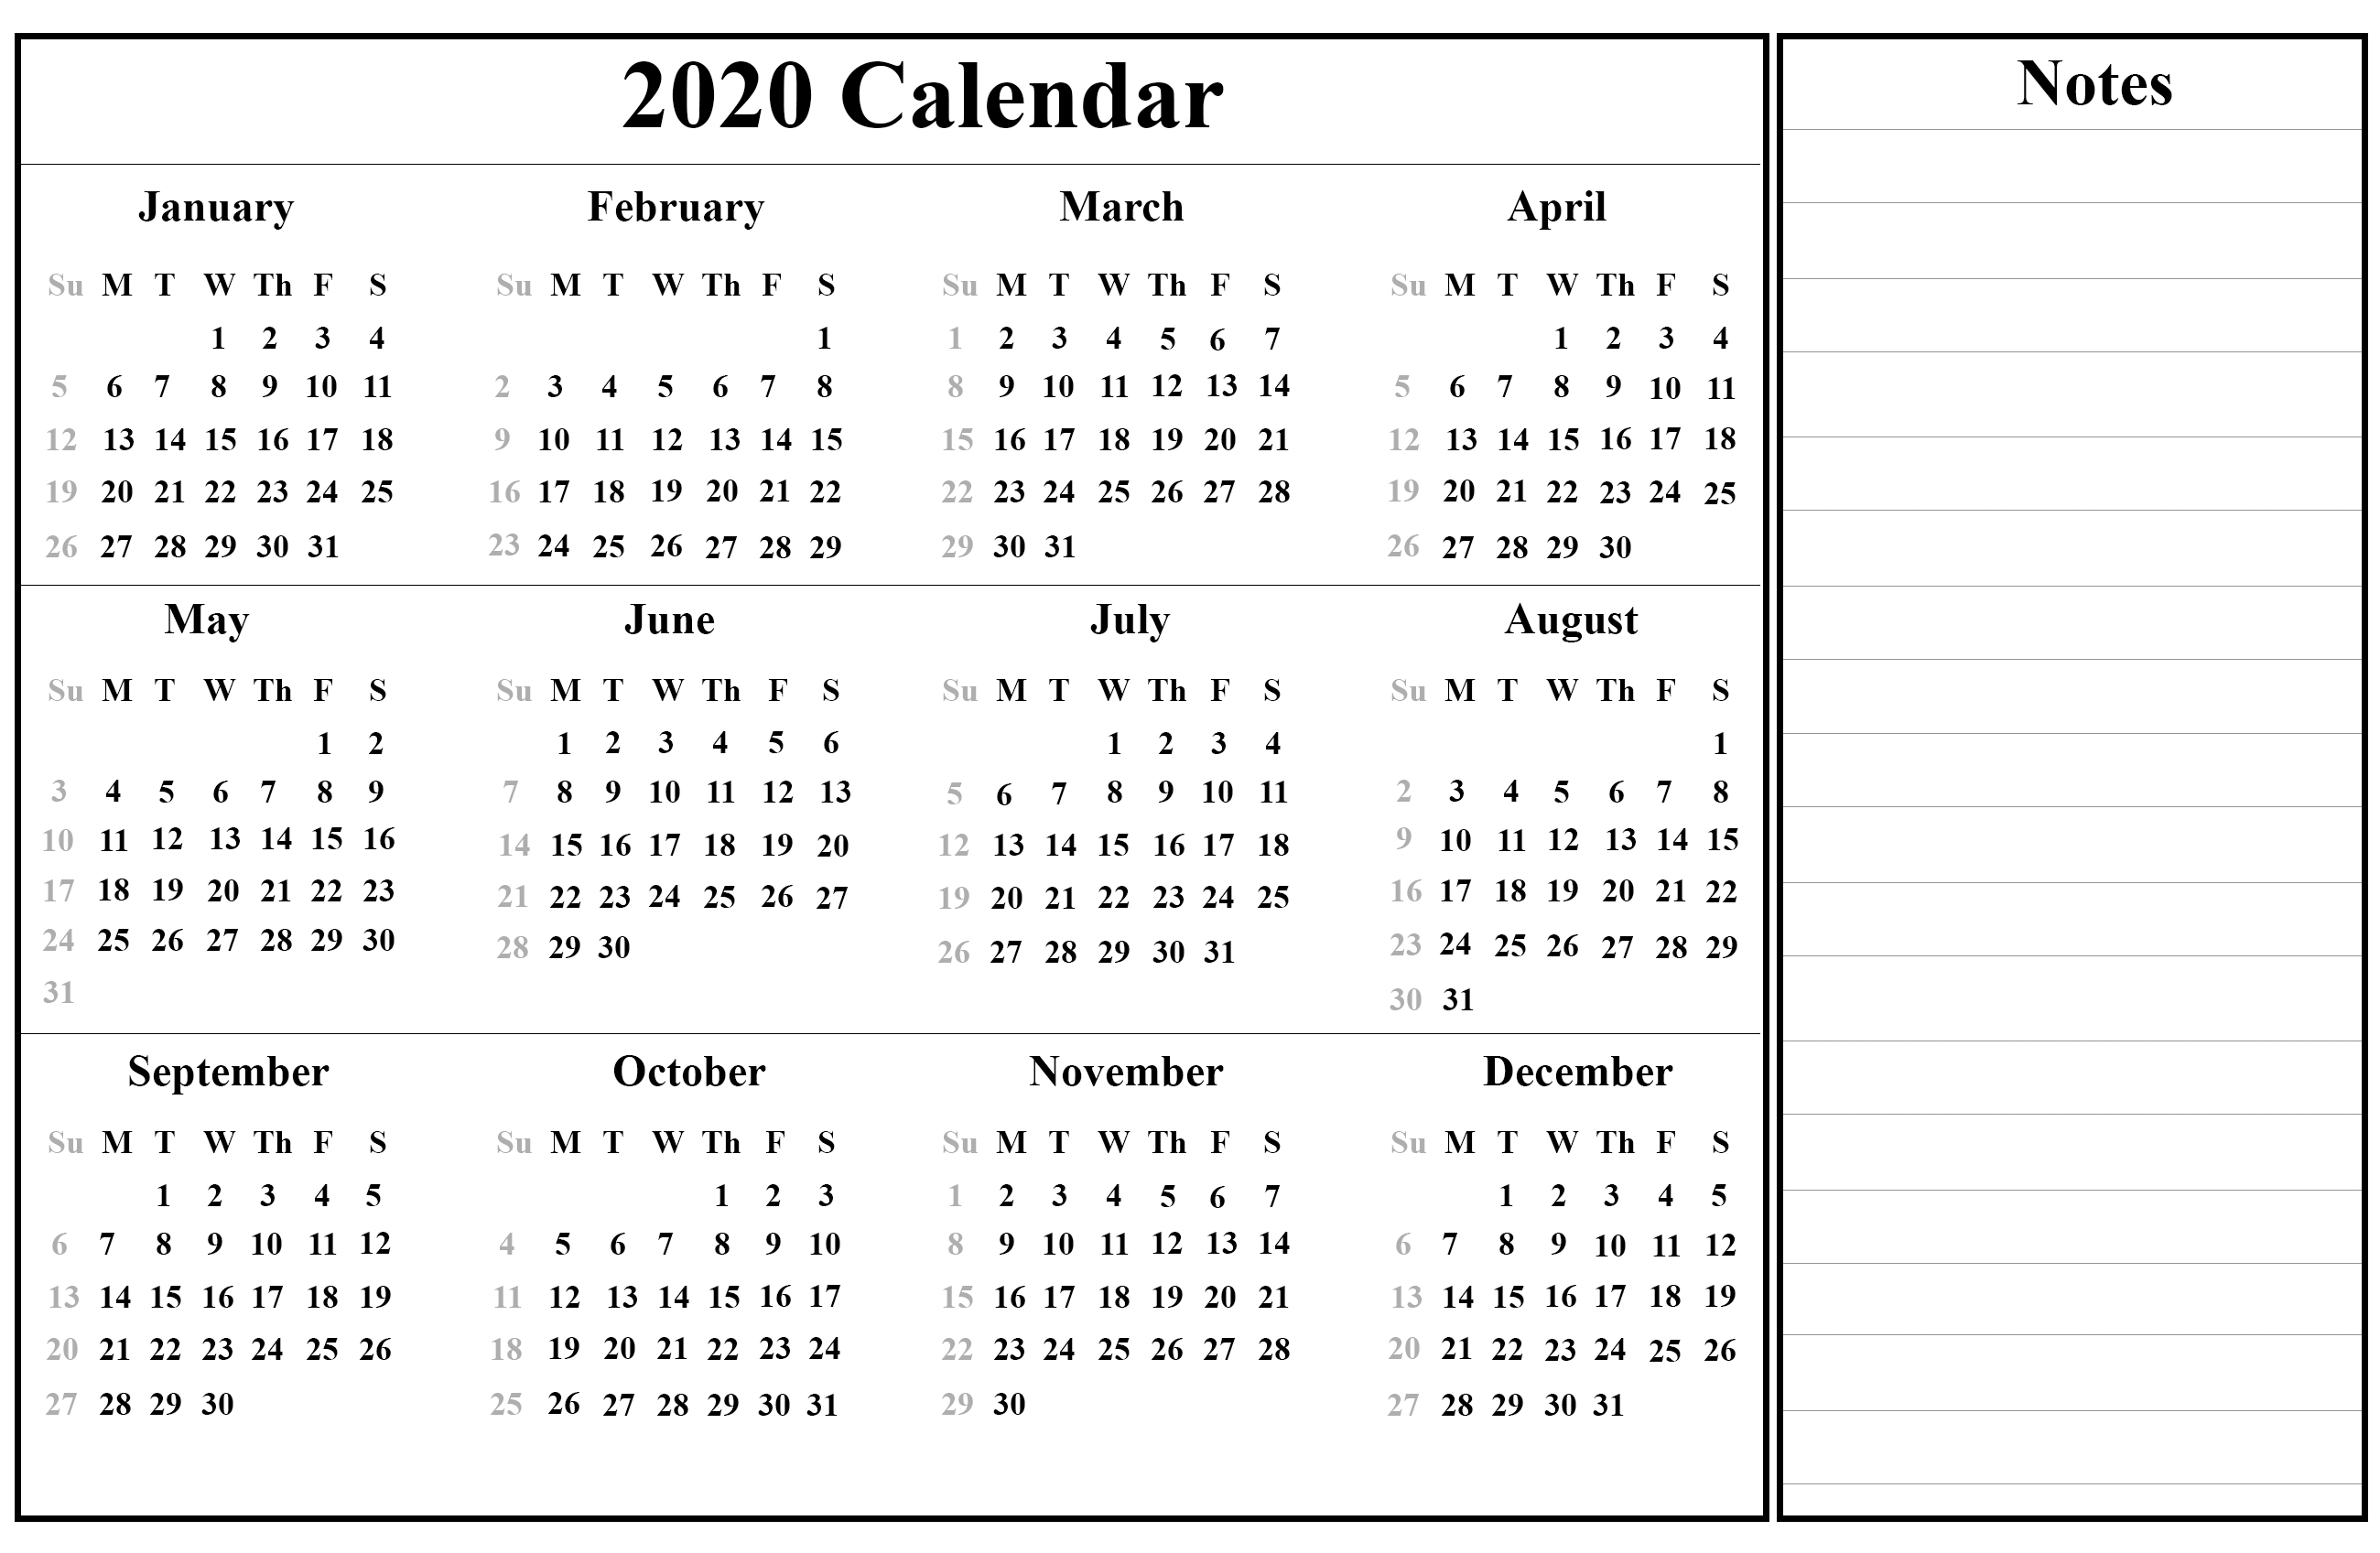 Nanakshahi Calendar 2020 January | Calendar Template Printable with Khalsa Heera Jantri 2020 January